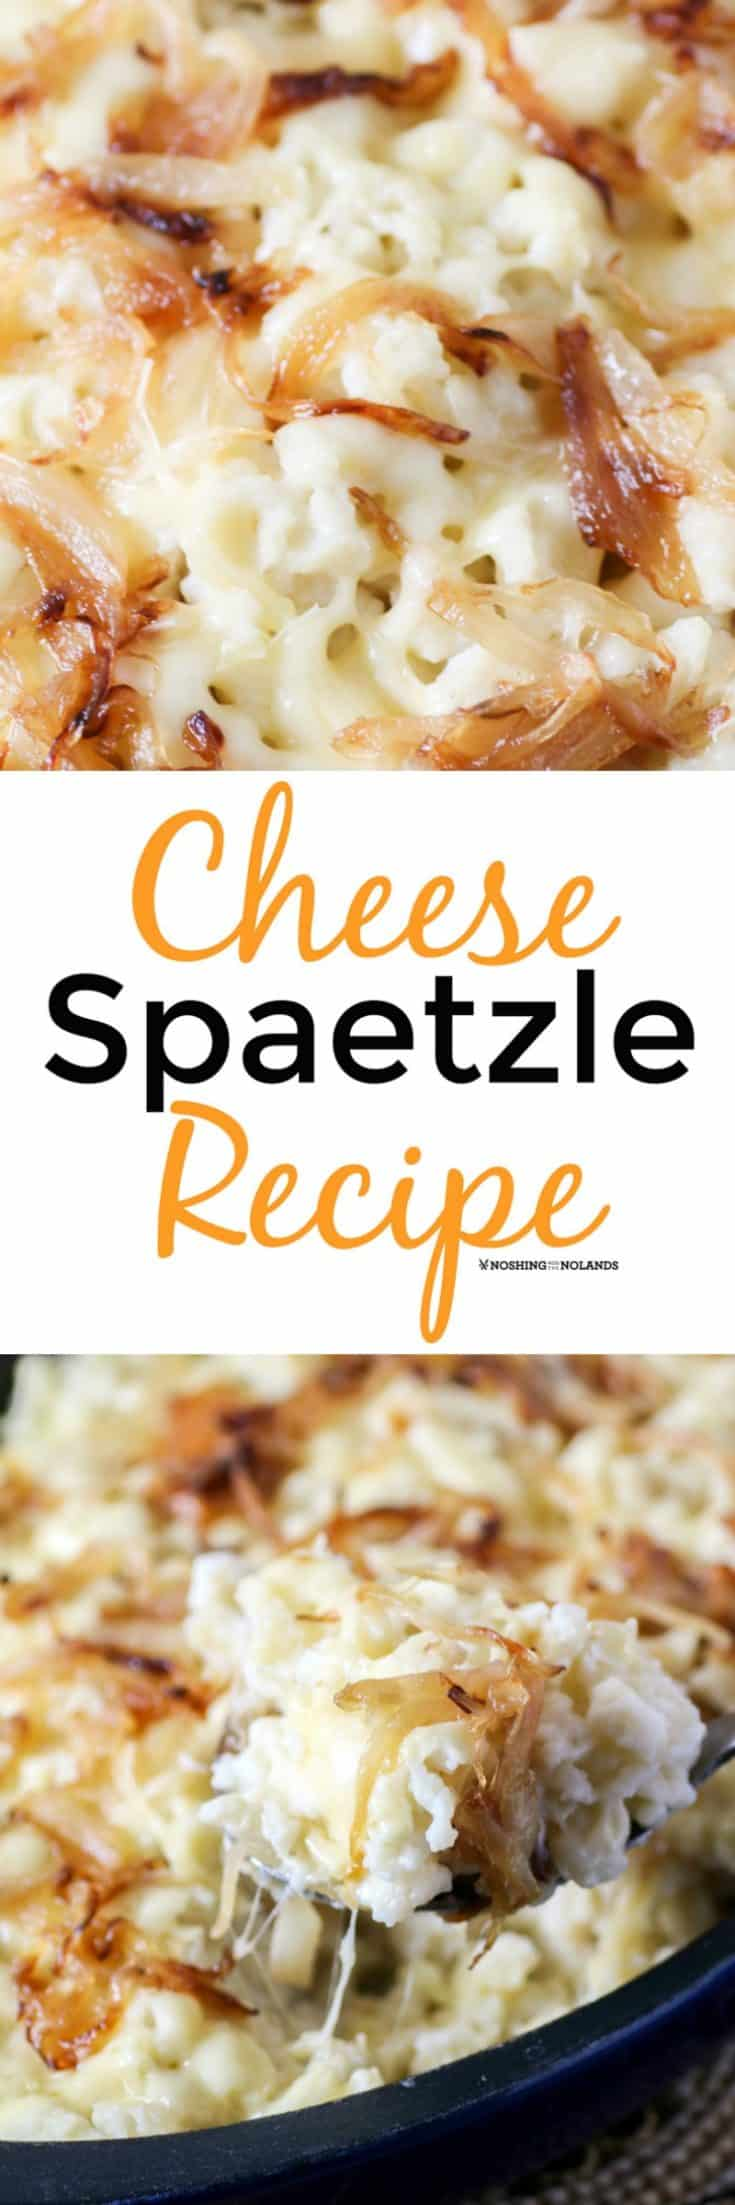 Cheese Spaetzle Recipe is an amazing German side dish or an entree on its own!! #spaetzle #cheesenoodles #German